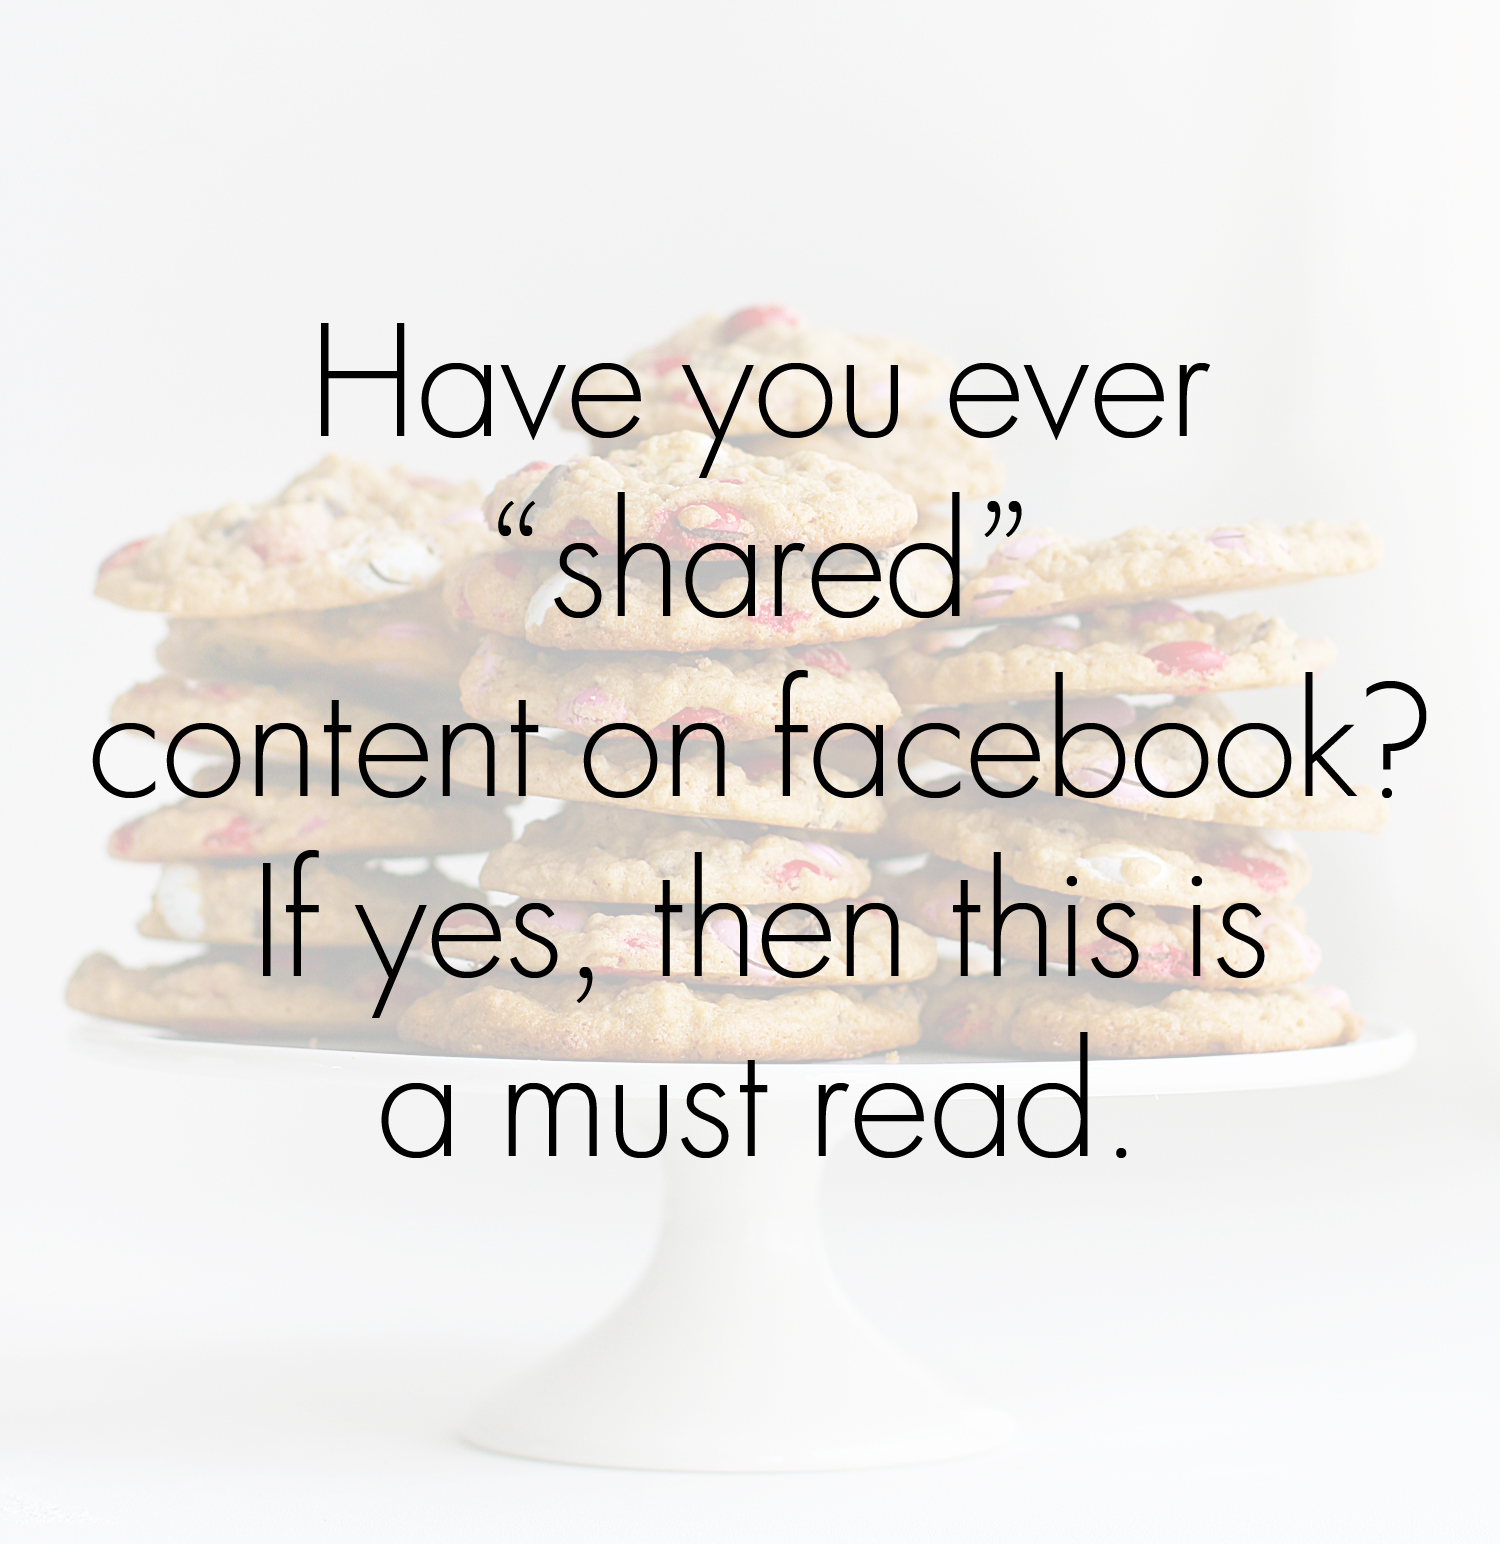 Meme on sharing Facebook content